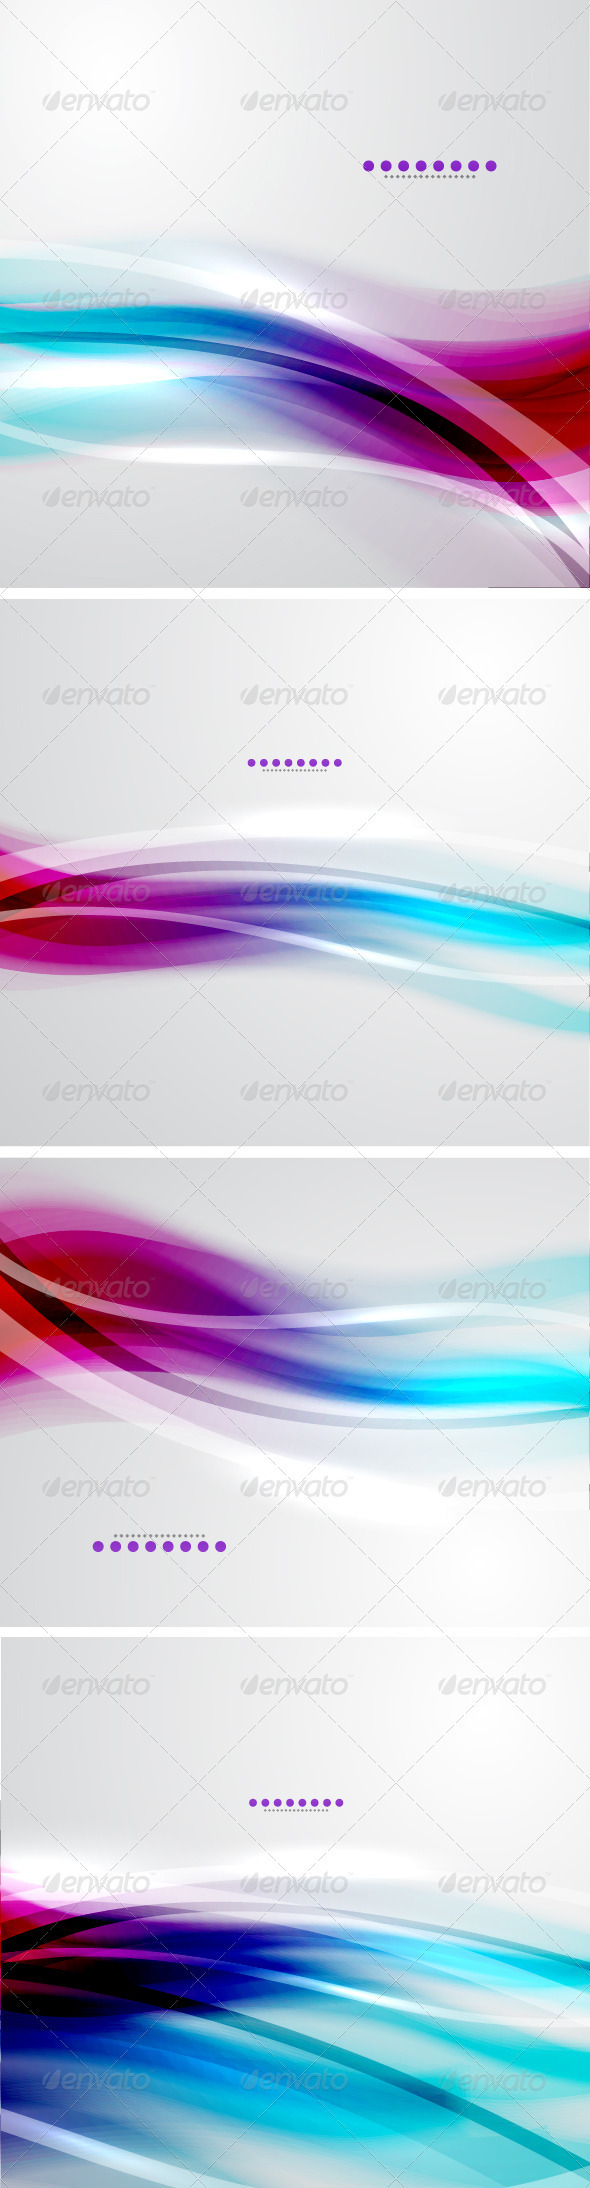 GraphicRiver Vector Soft Light Backgrounds 3704447